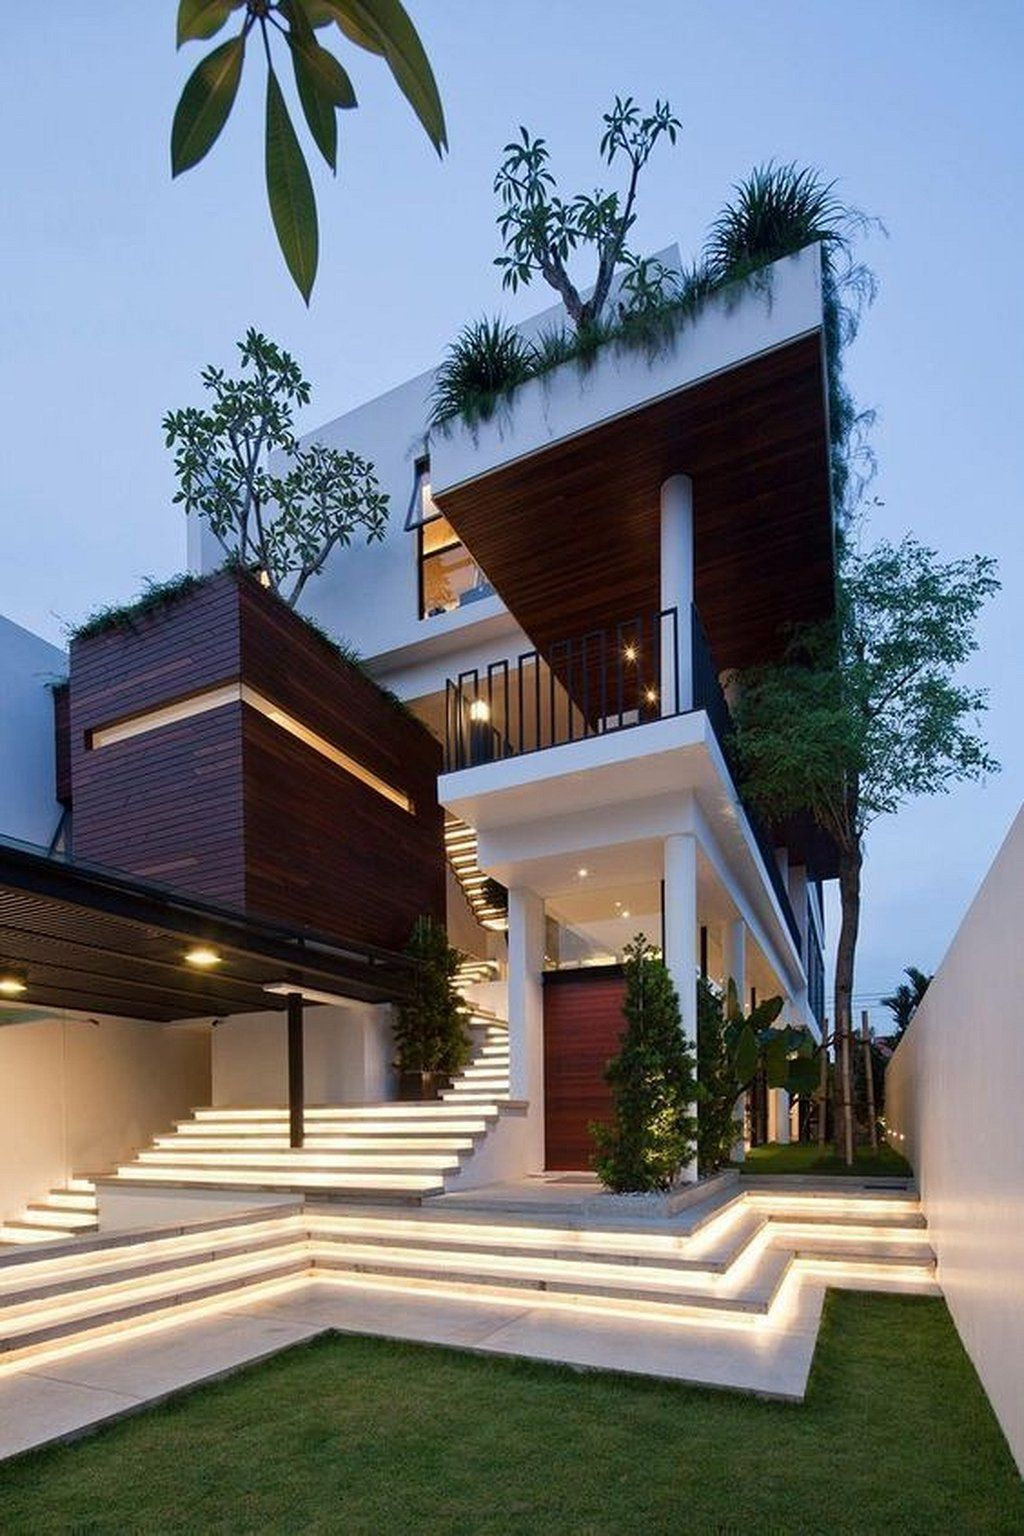 Modern house design contemporary houses architecture kitchen apartment also there are many examples of beautiful and attractive minimalist home rh pinterest